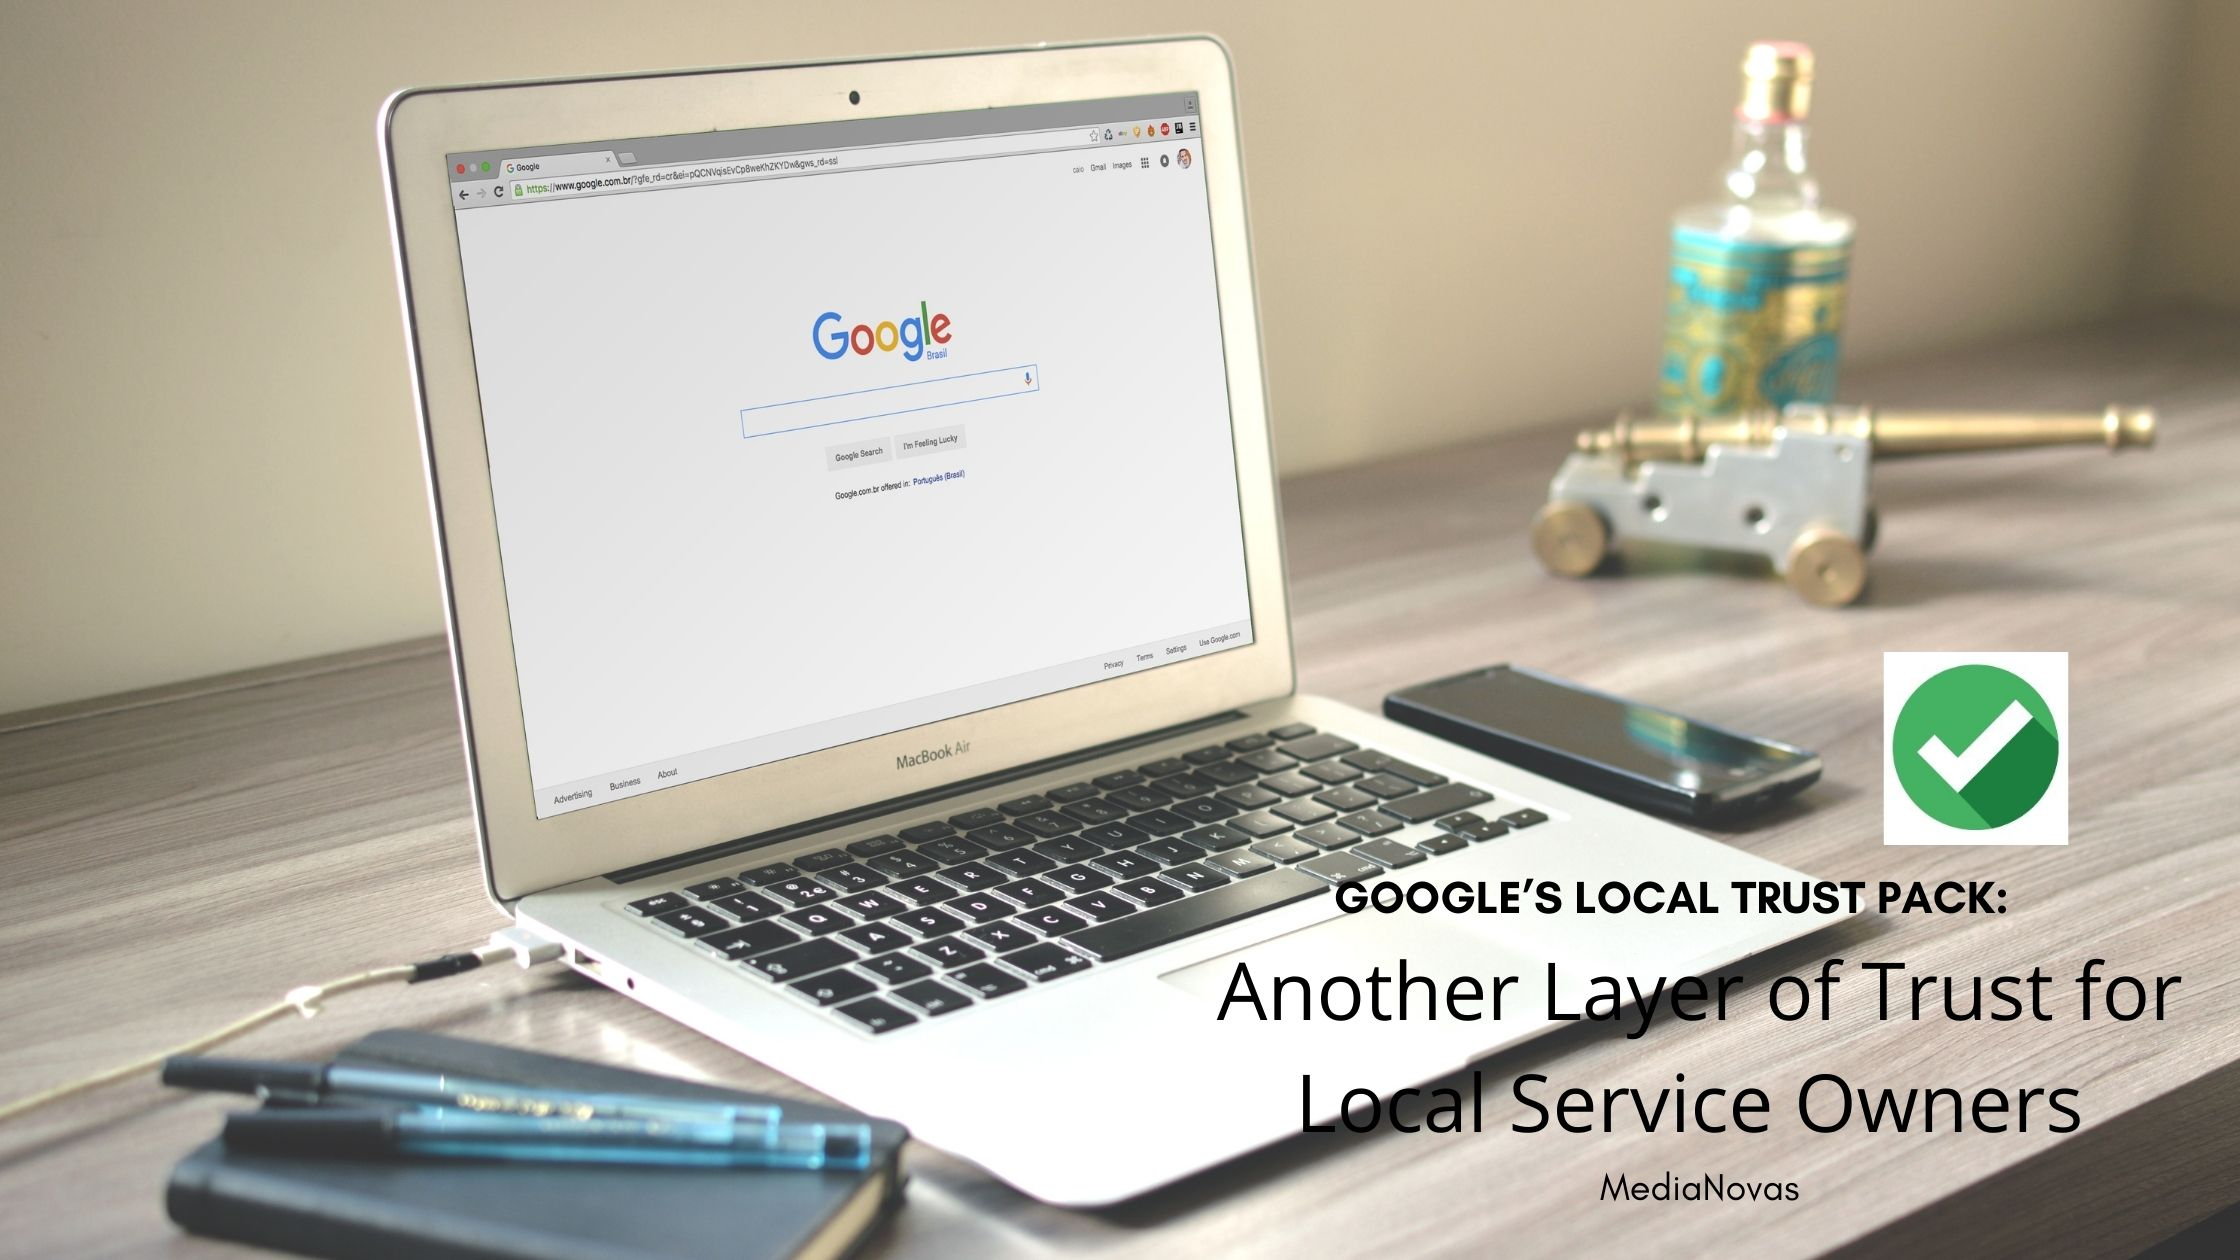 Google's Local Trust Pack: Another Layer of Trust for Local Service Owners